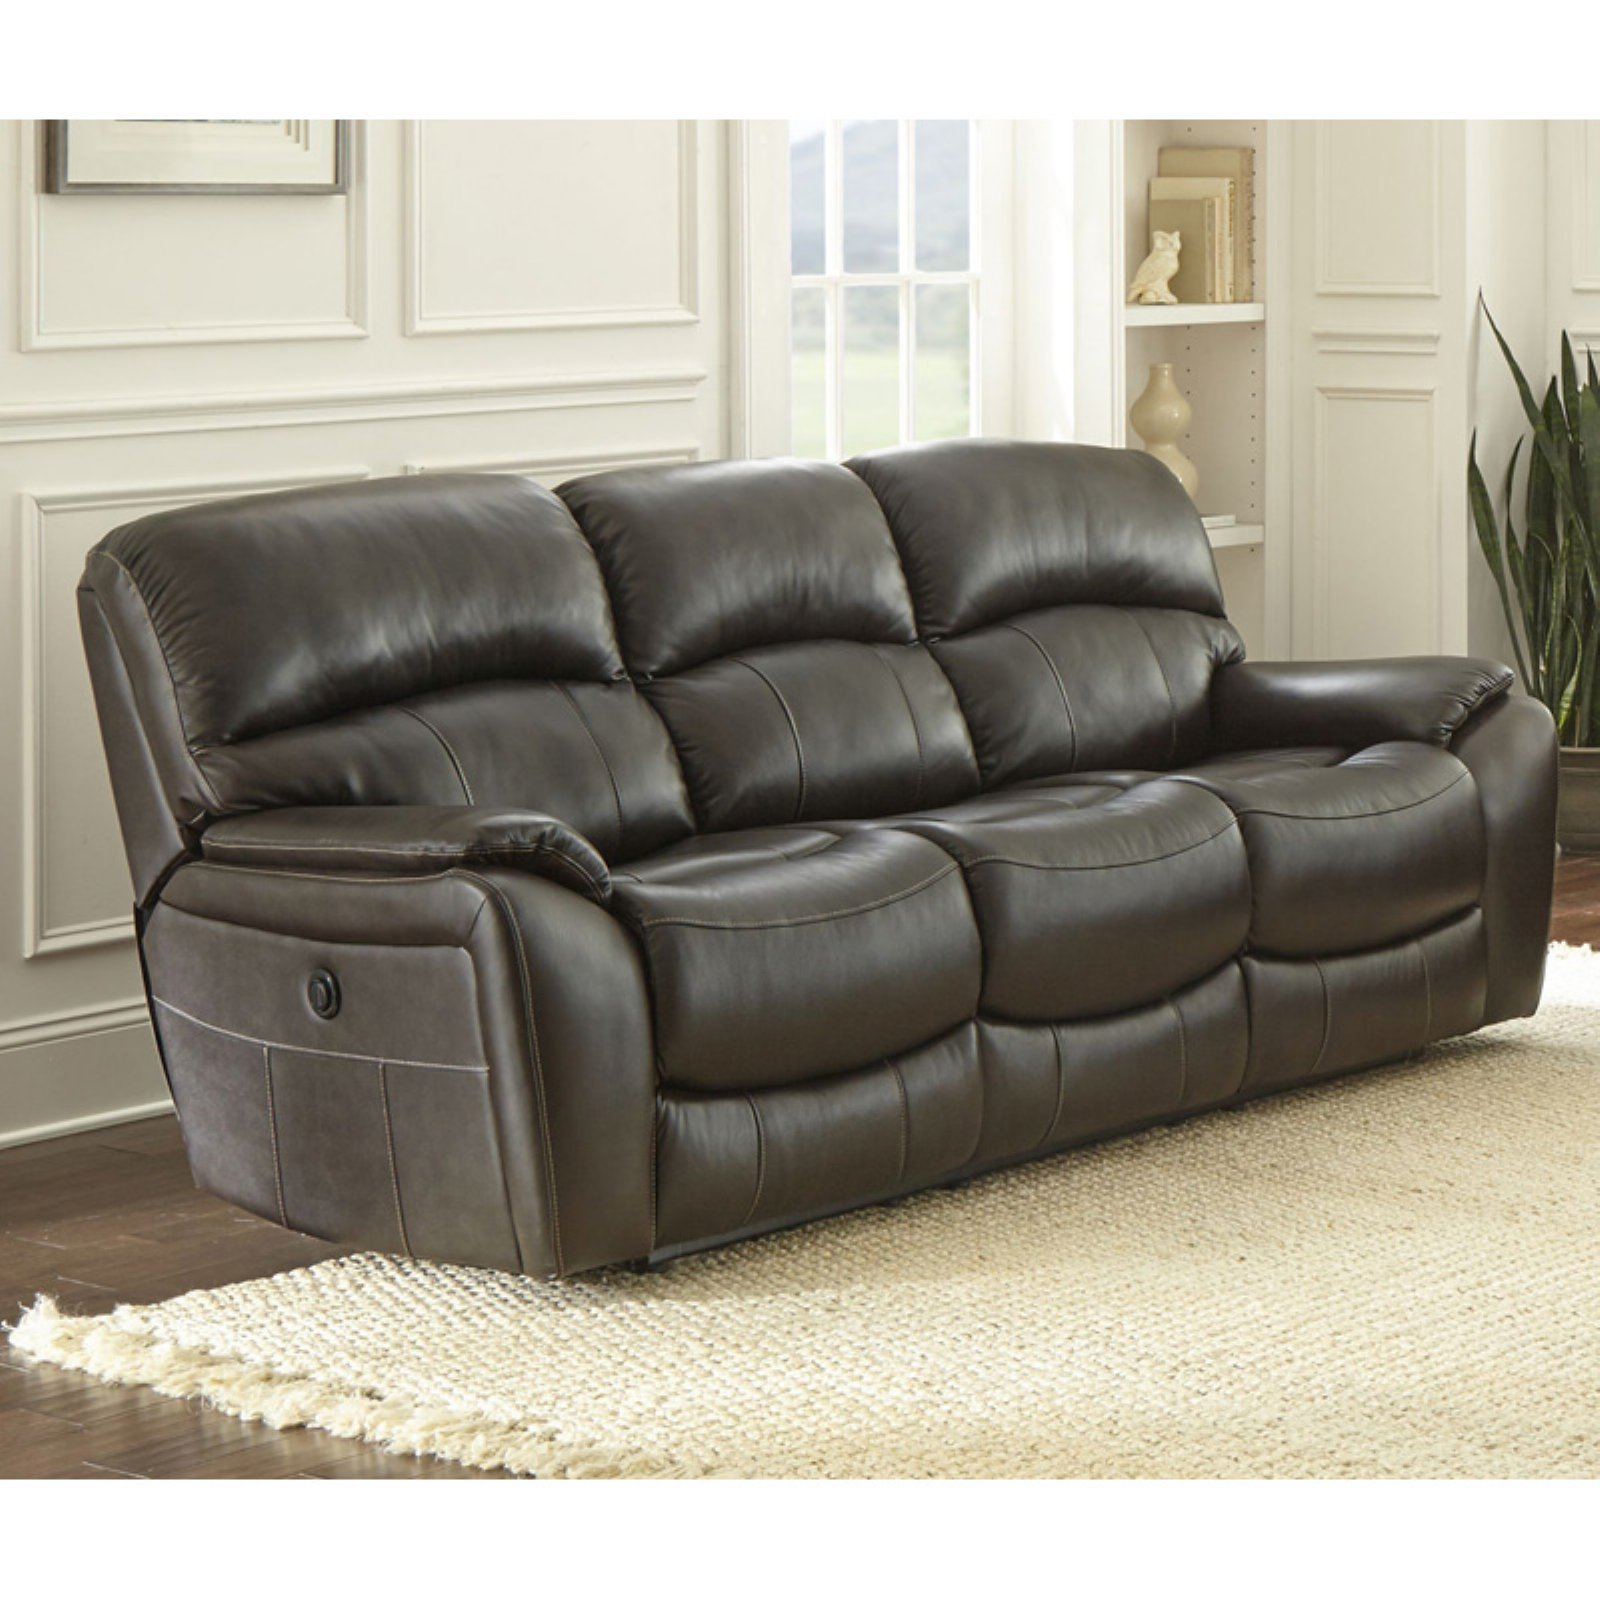 Steve Silver Co Rolanda Leather Sofa Walmart Com